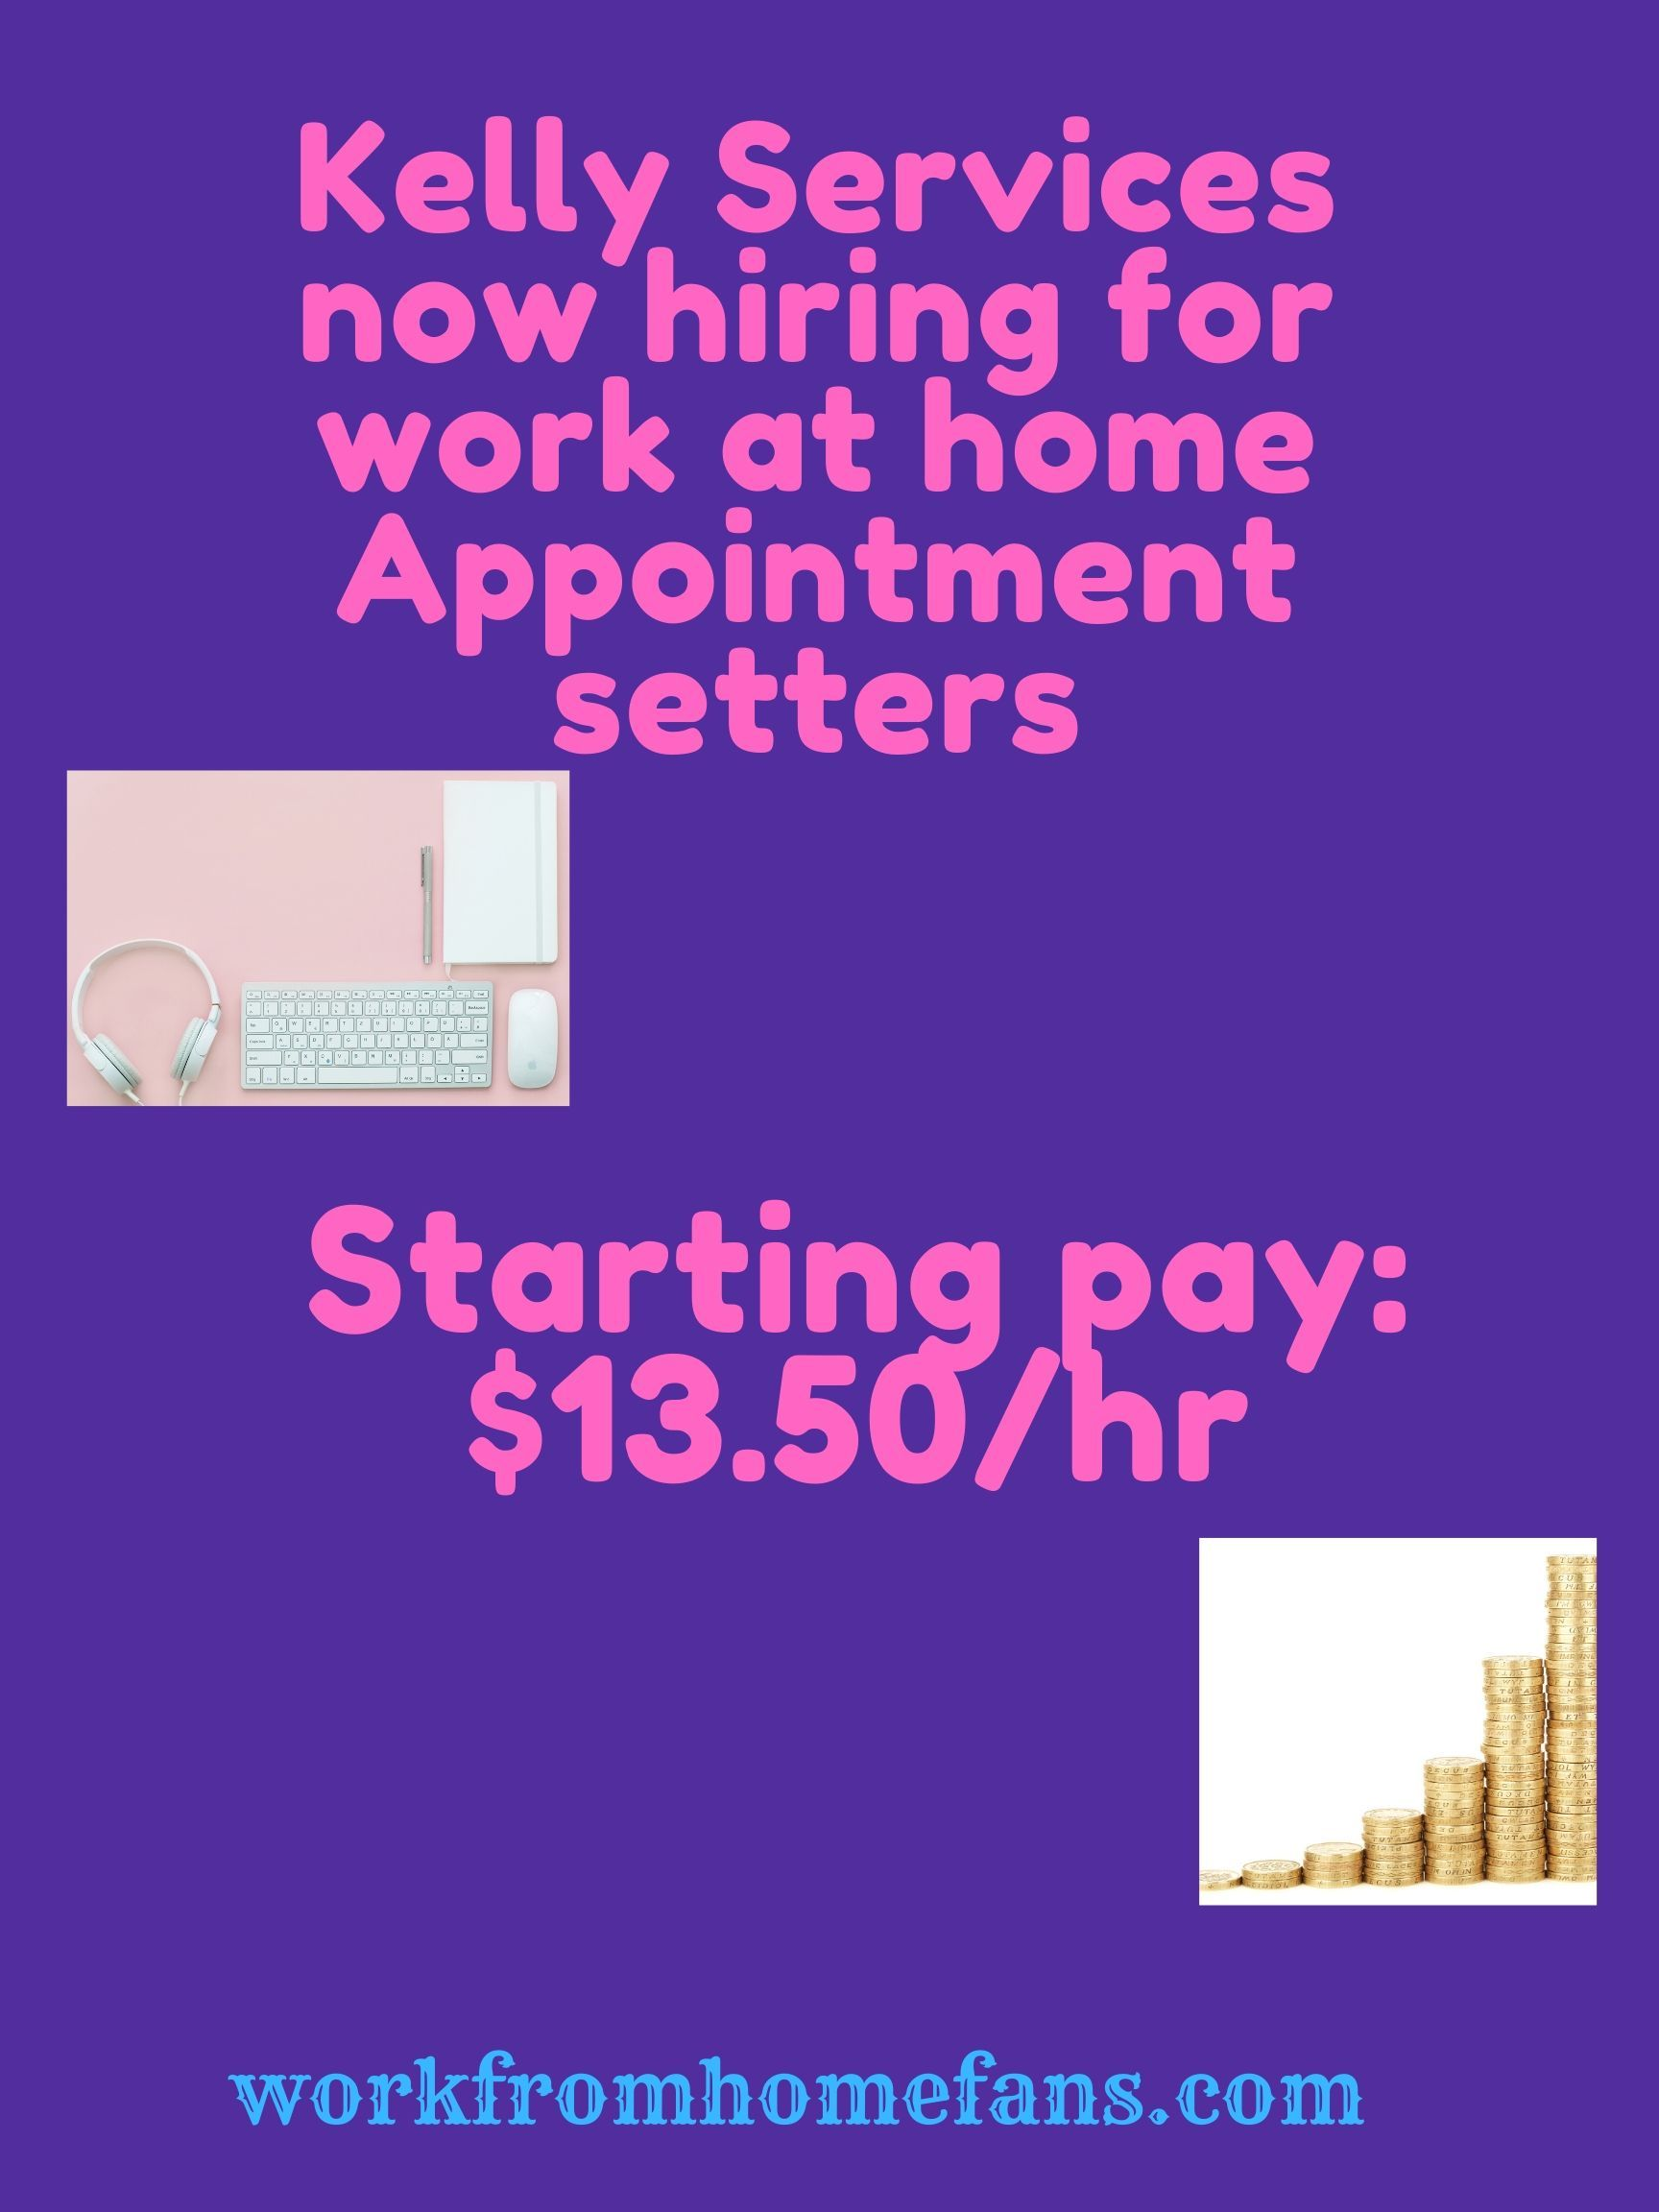 Kelly services now hiring in 2020 working from home